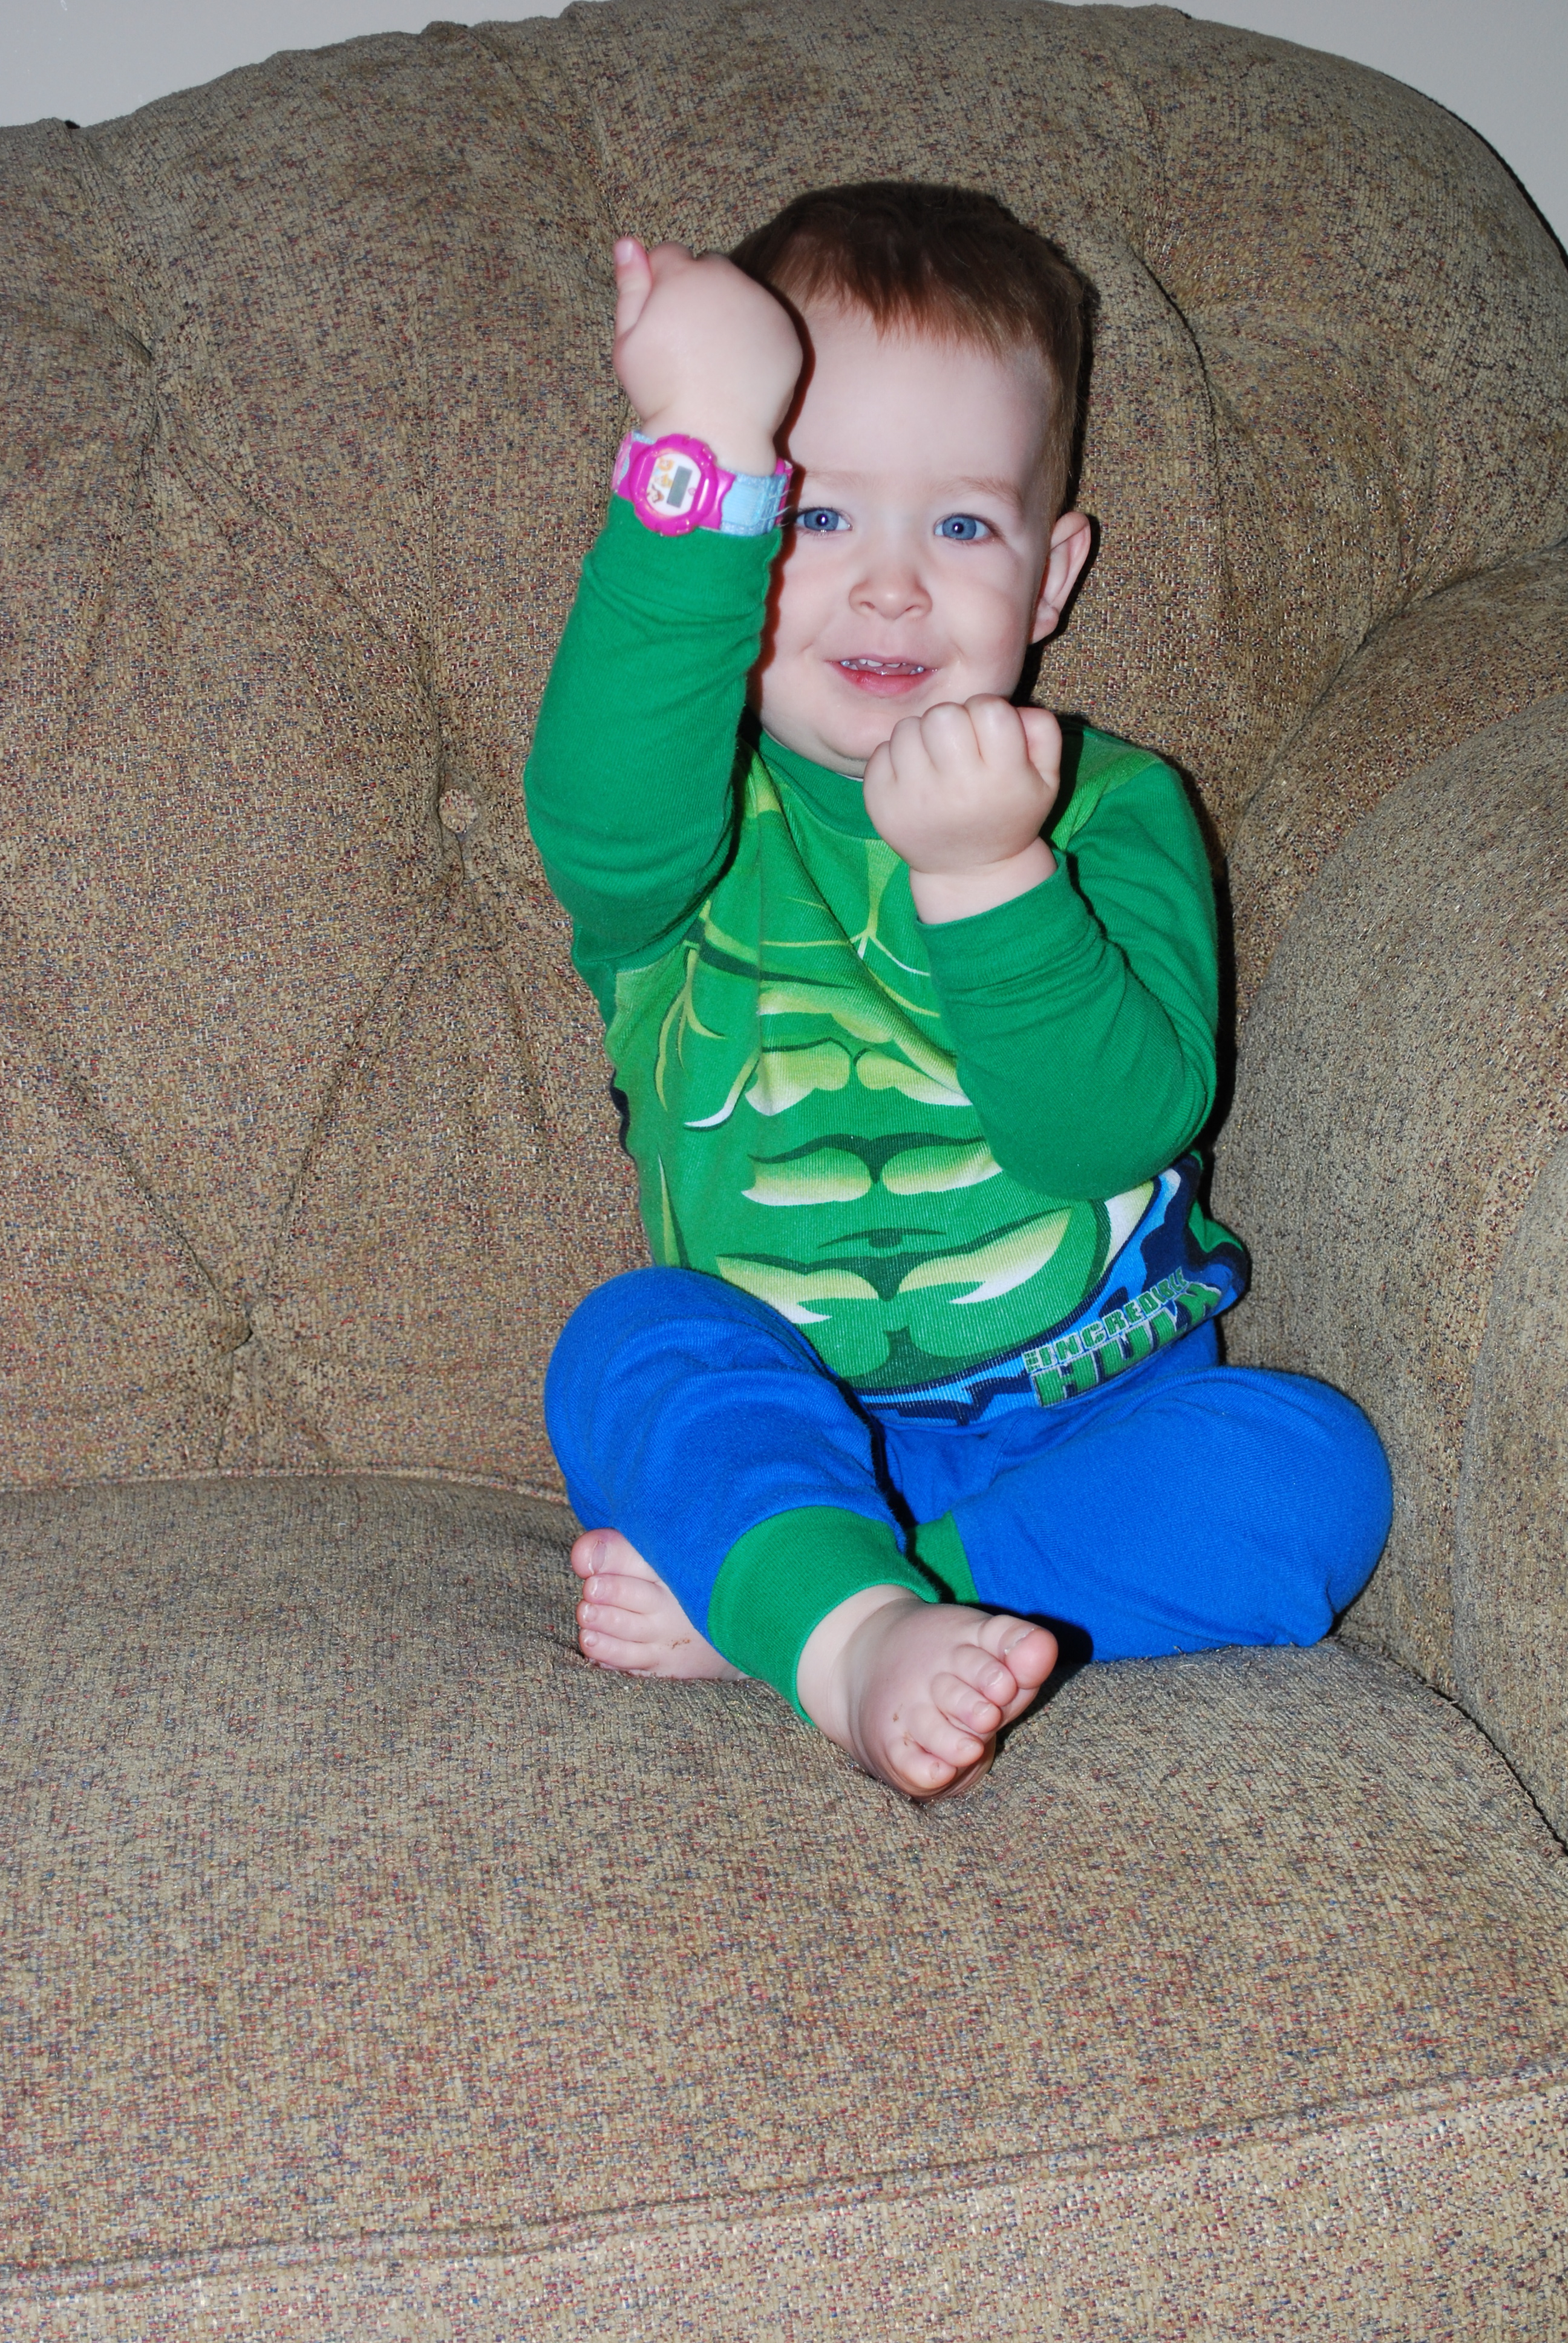 The Hulk wearing a princess watch...this may go over the line in Josh's book!